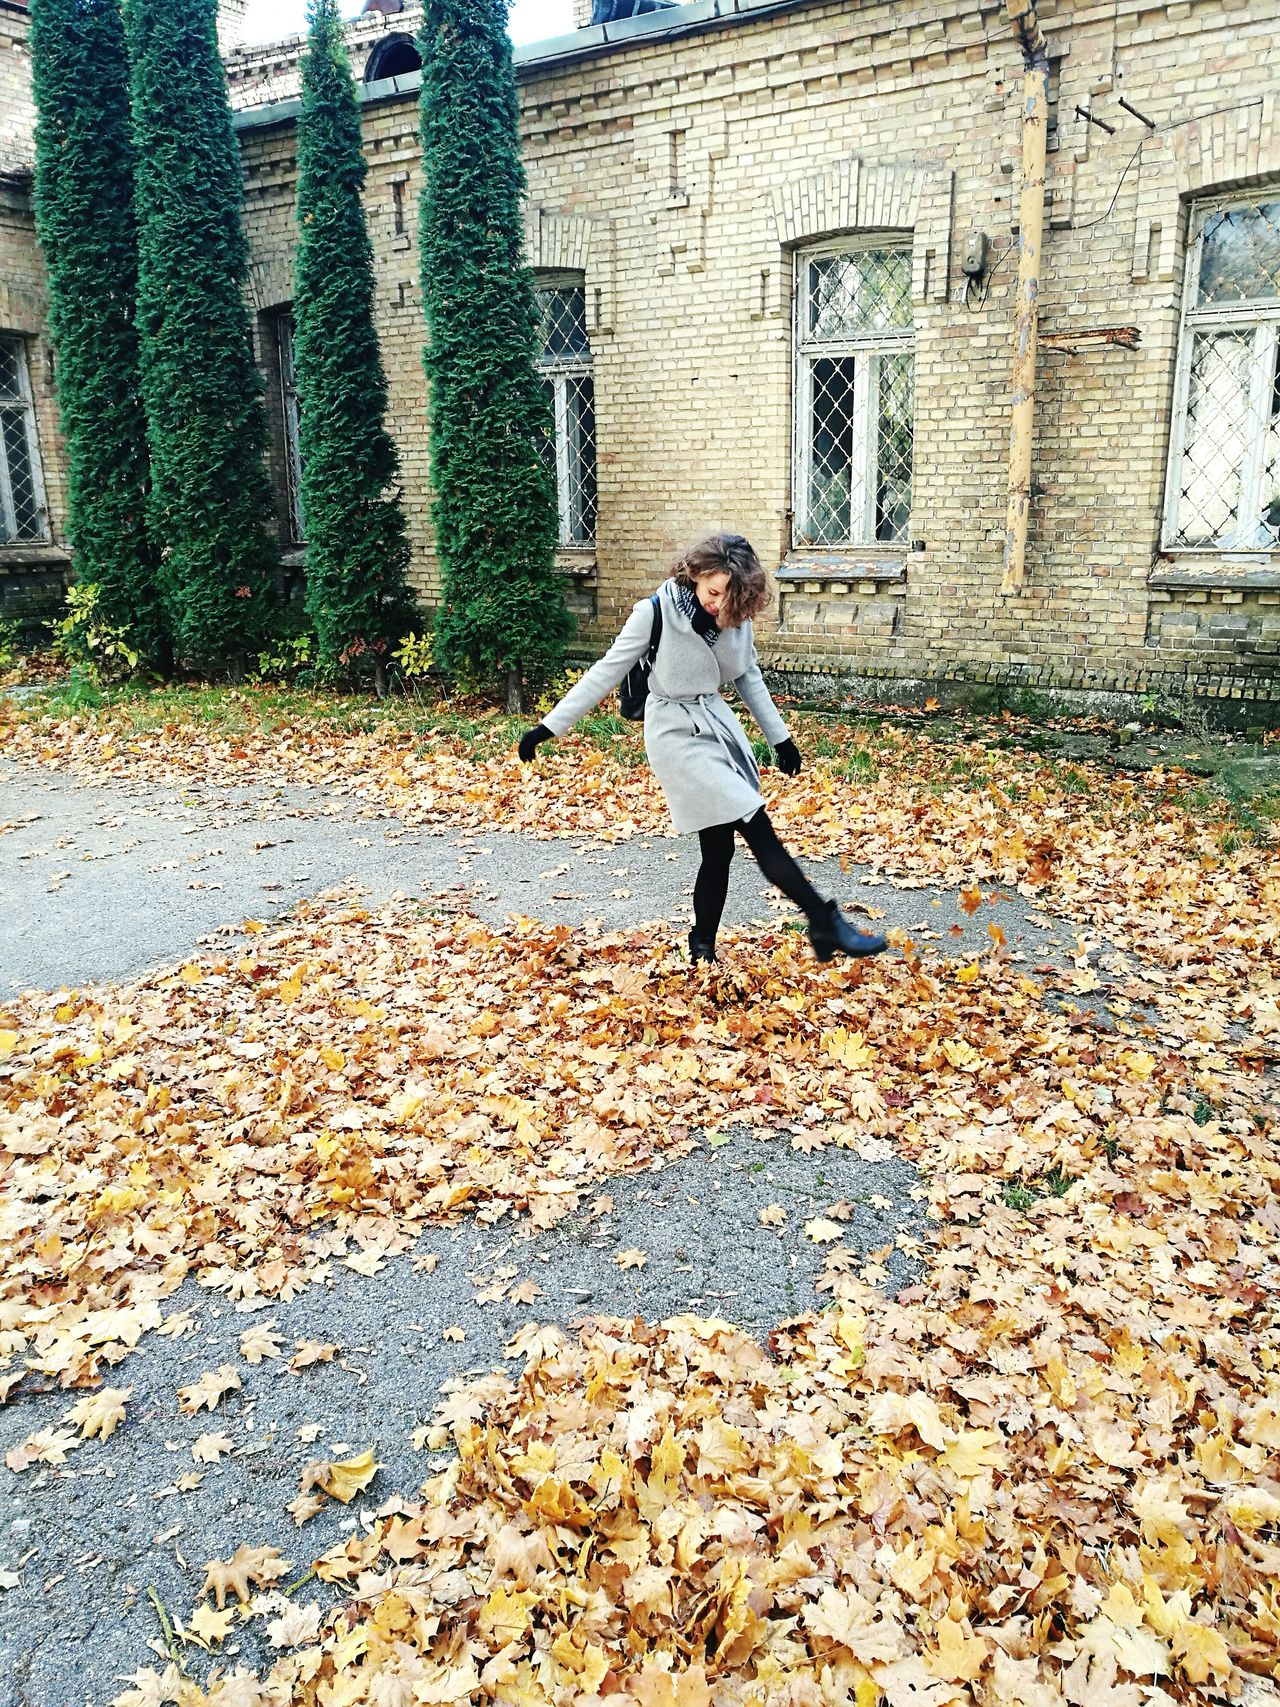 Having fun! Leaves Leaves🌿 Leavesporn Leaves On The Ground Leaves 🍁 Autumn Autumn Colors Autumnbeauty Autumn🍁🍁🍁 Autumnleaves Palying Lithuaniangirl Lithuanian Girl Lithuania Nature Lithuaniagirl SundayFunday Sunday Afternoon Sunday Walk Vilnius Vilnius City